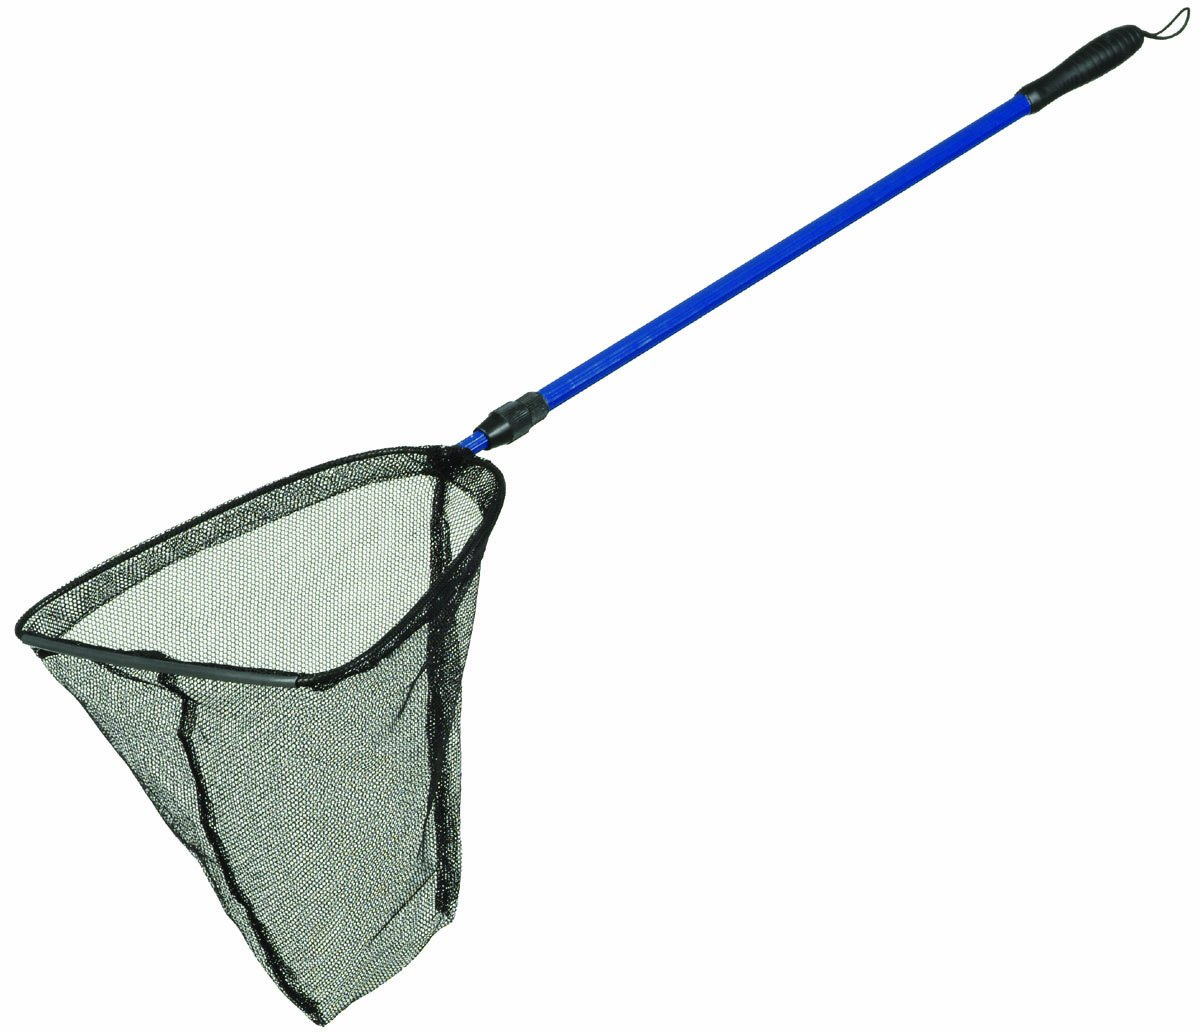 pond fish net 14 diameter 33 60 telescopic handle